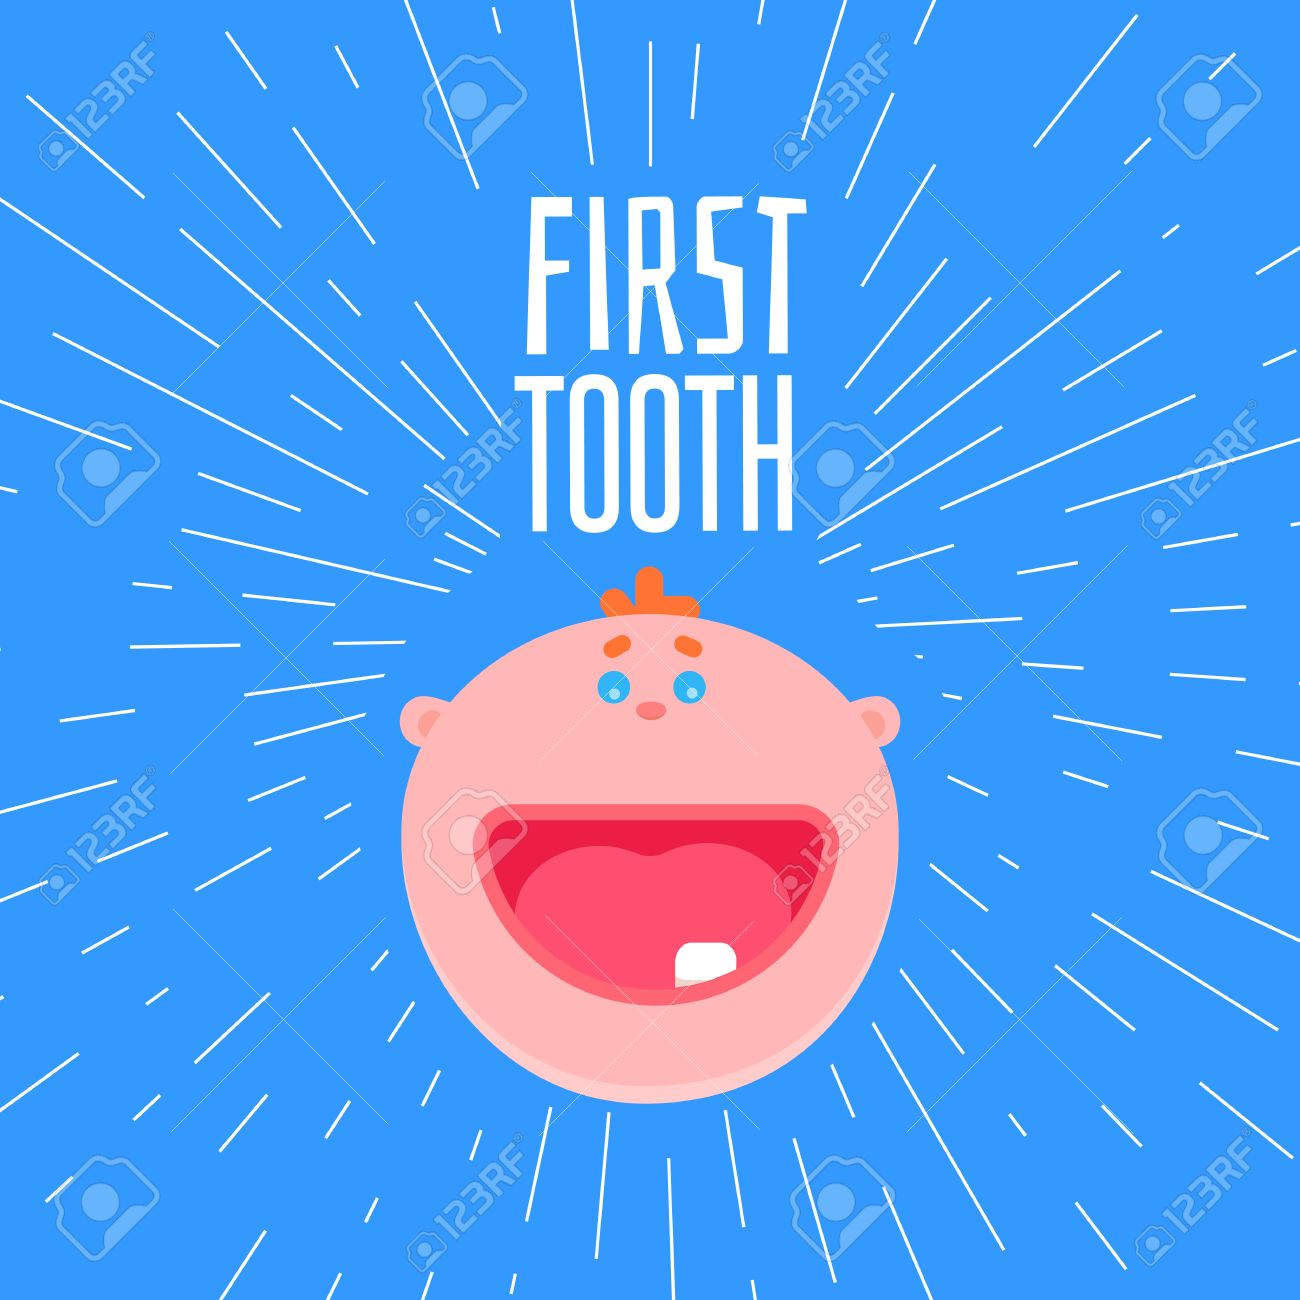 Adorable 6 months old baby laughing first tooth greetings card adorable 6 months old baby laughing first tooth greetings card with typography and baby flat m4hsunfo